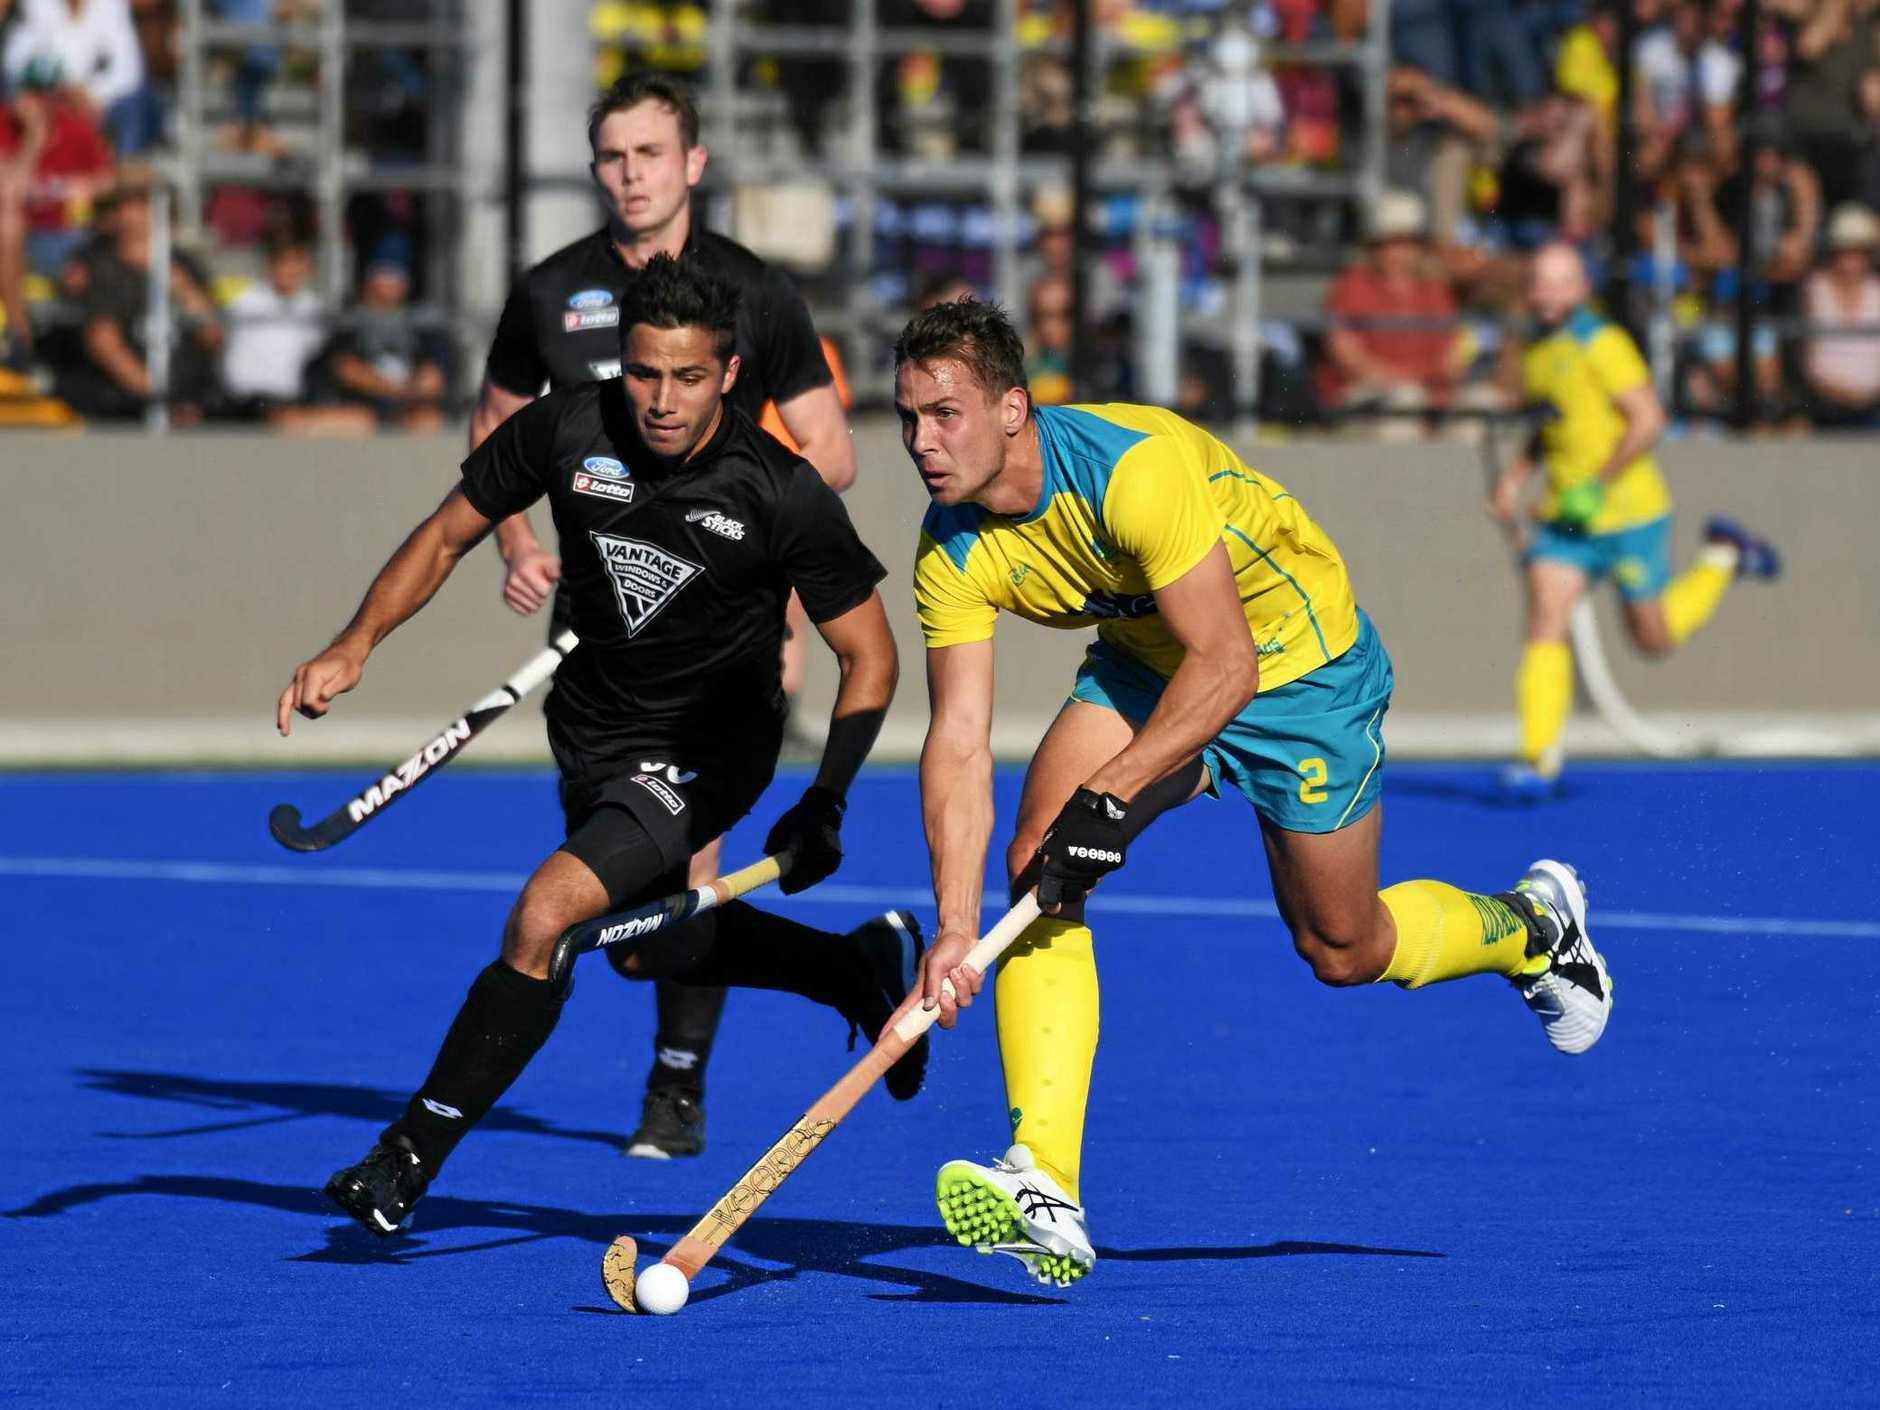 Australia and New Zealand are playing in the Oceania Cup in Rockhampton this weekend.